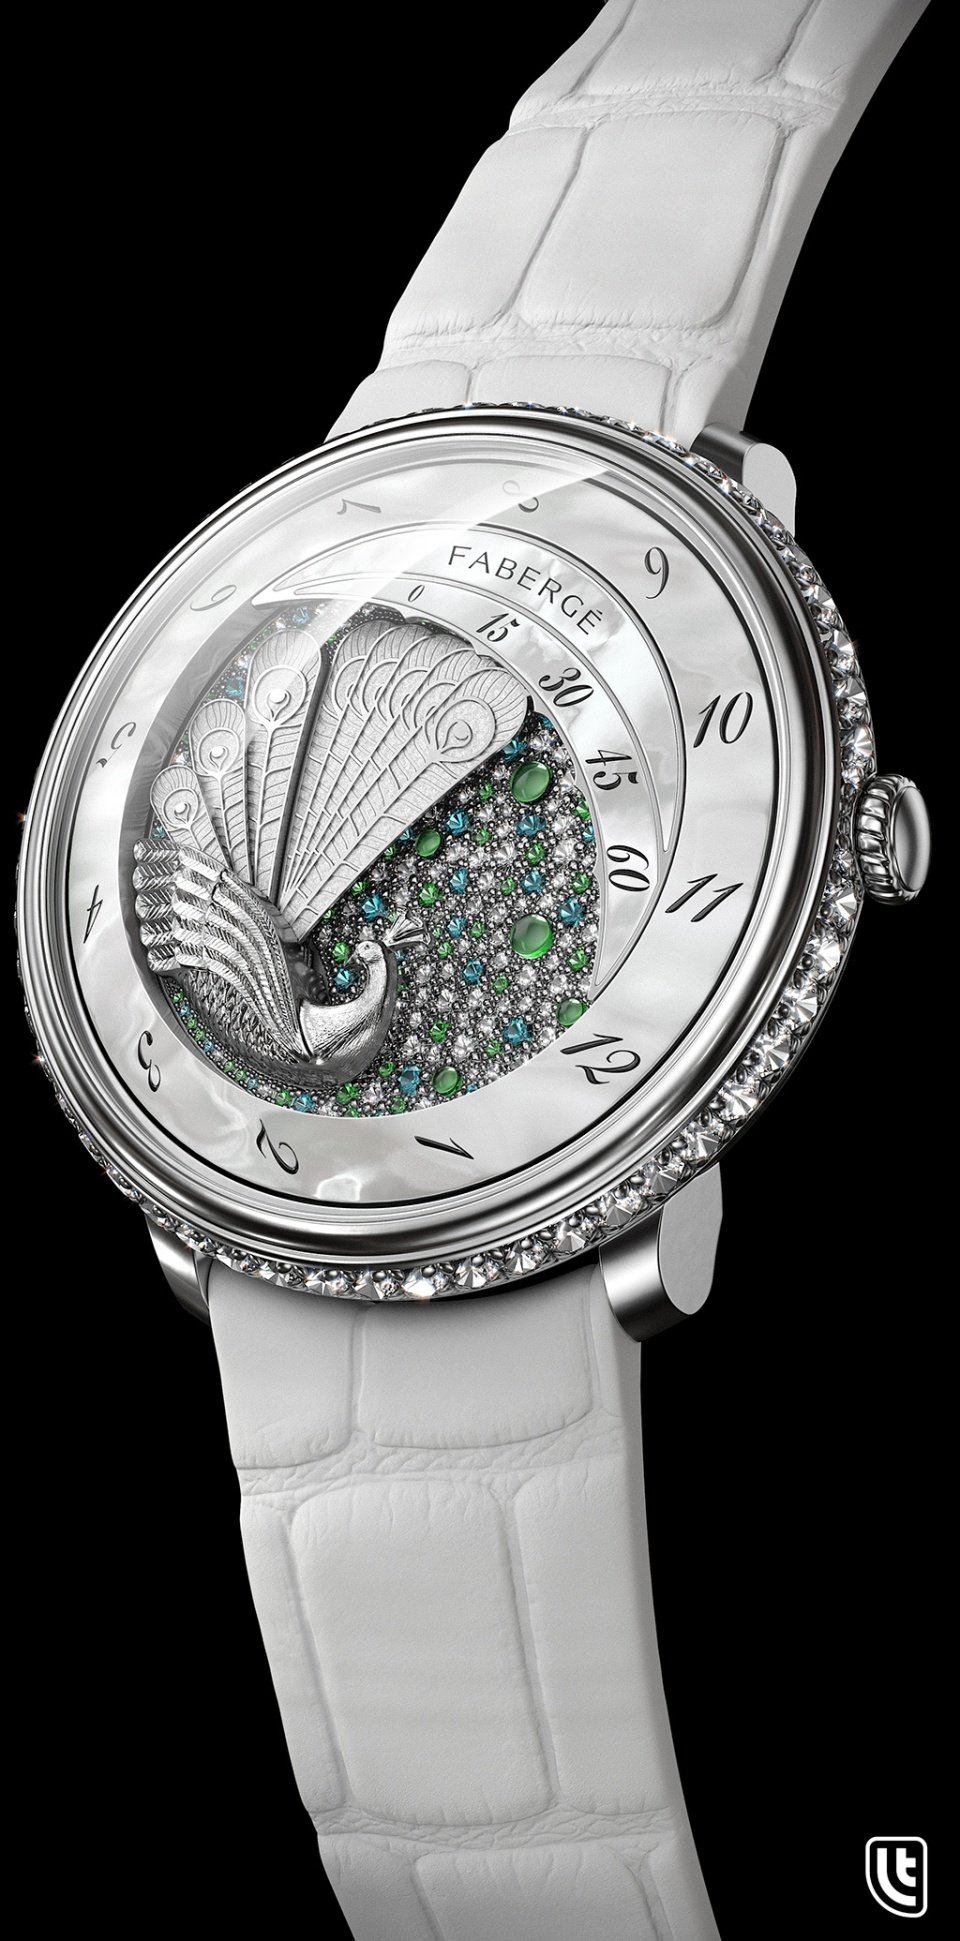 Peacock_Winter_Faberge_David_letondor_v2